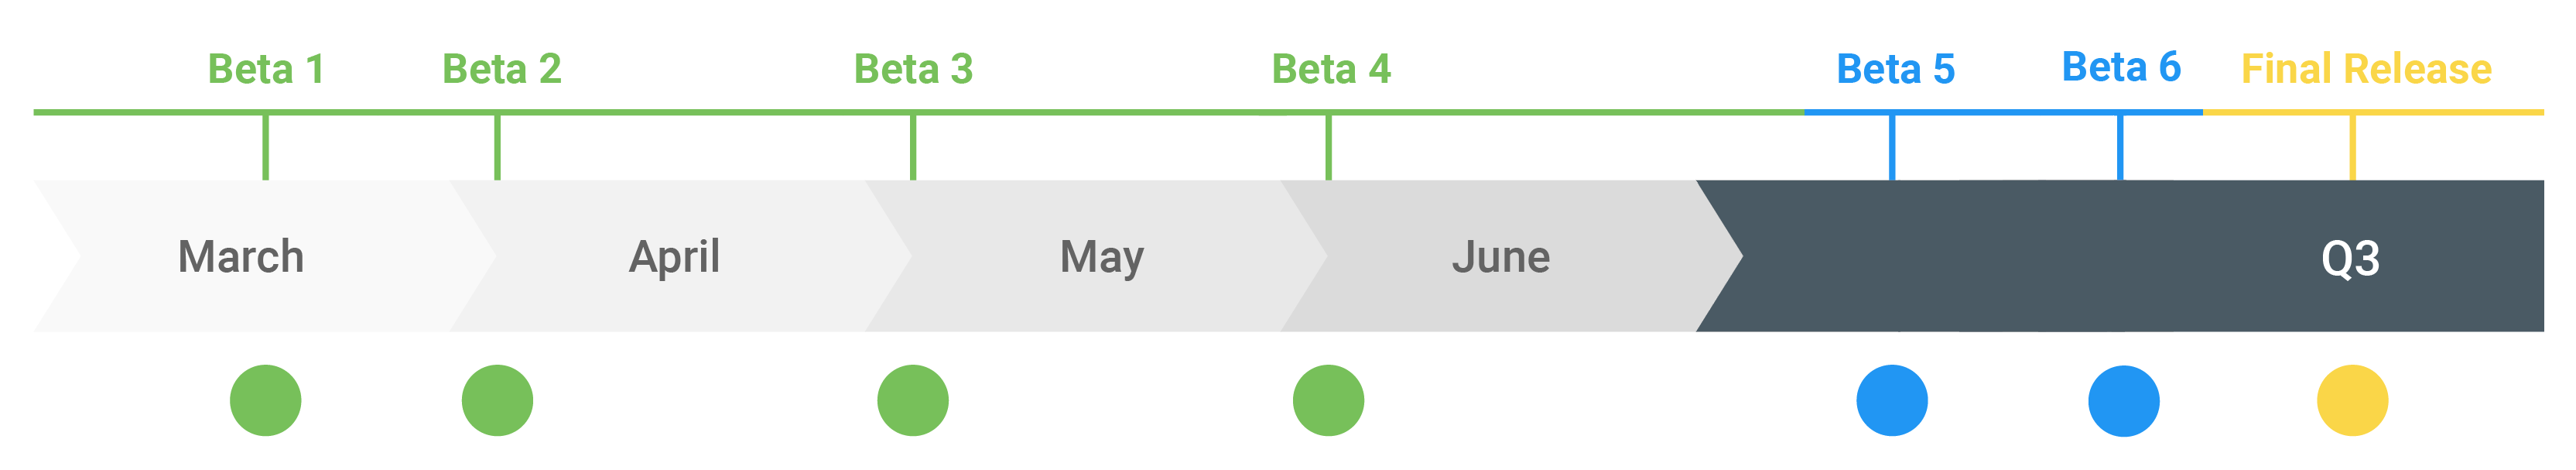 The Android Q beta timeline.